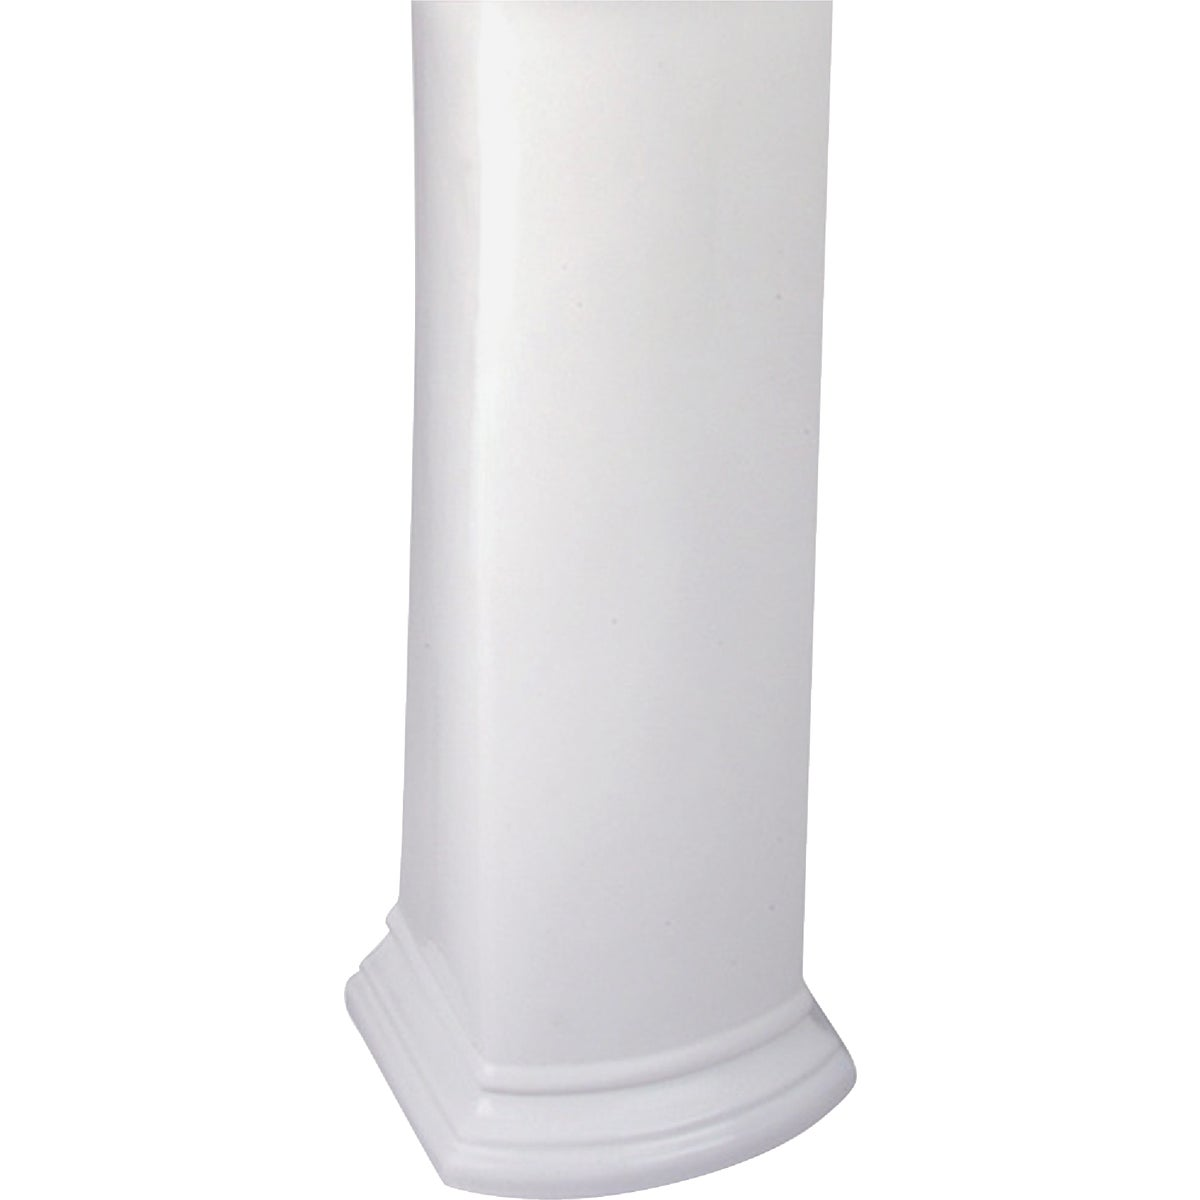 BARRETT WHITE PED BASE - 329010040 by Mansfield Plumbing